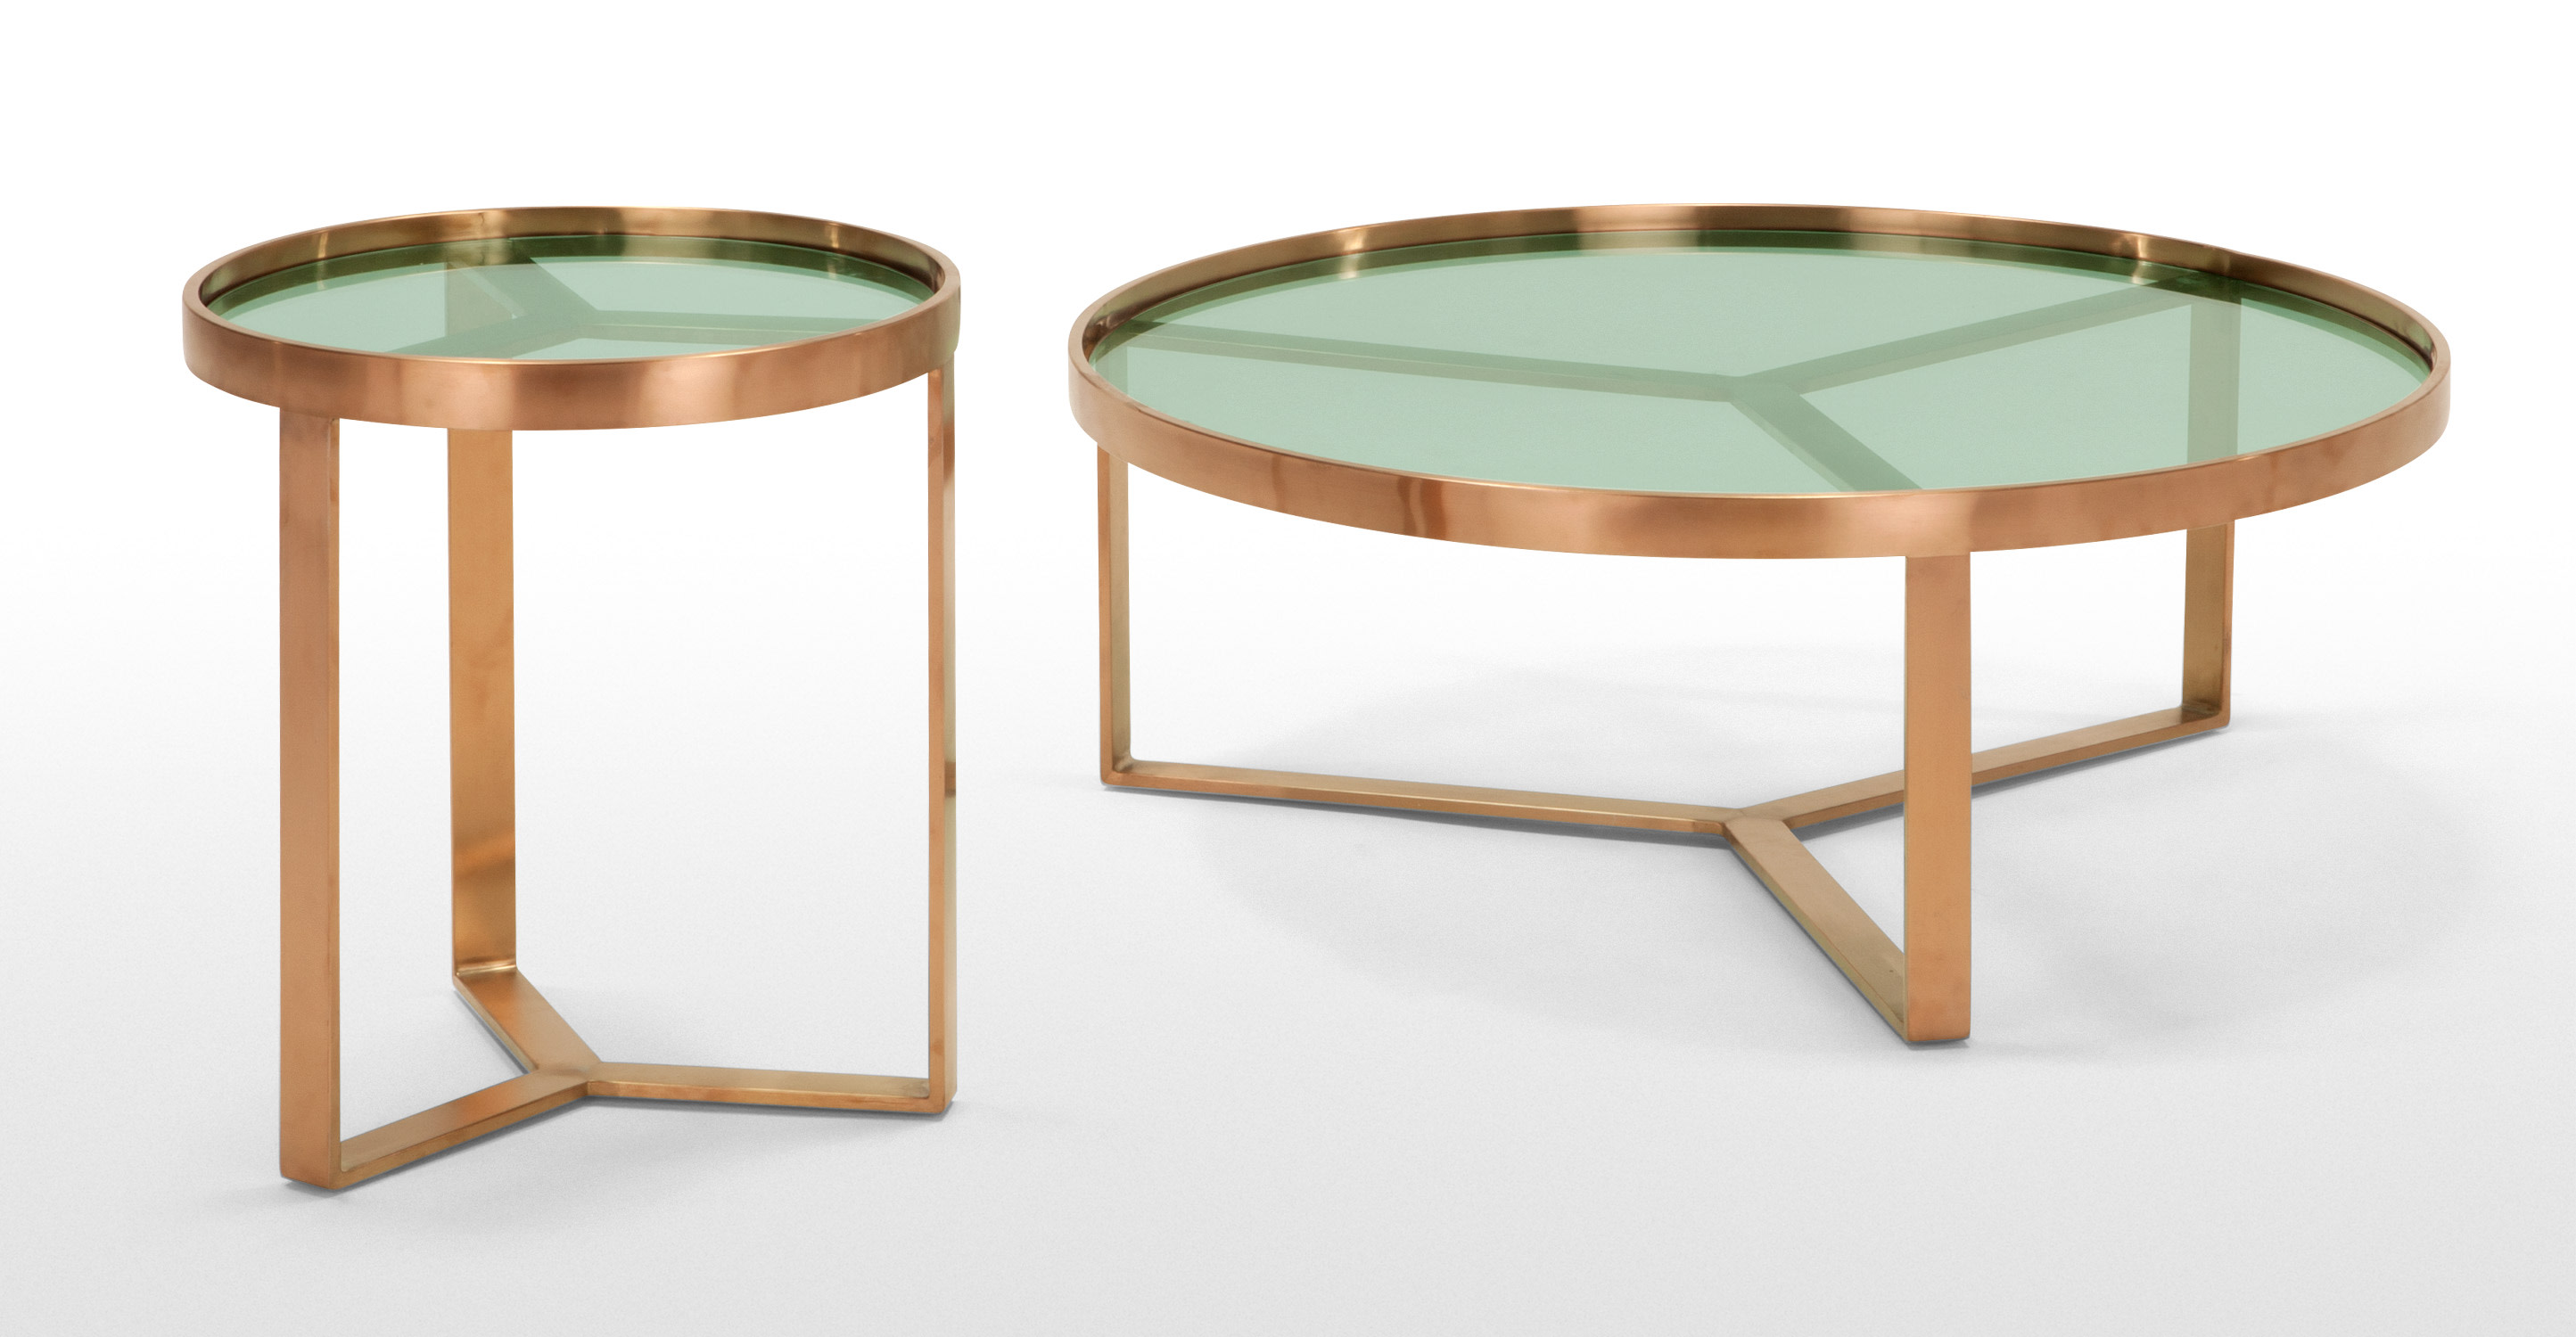 aula side table brushed copper and green glass. Black Bedroom Furniture Sets. Home Design Ideas